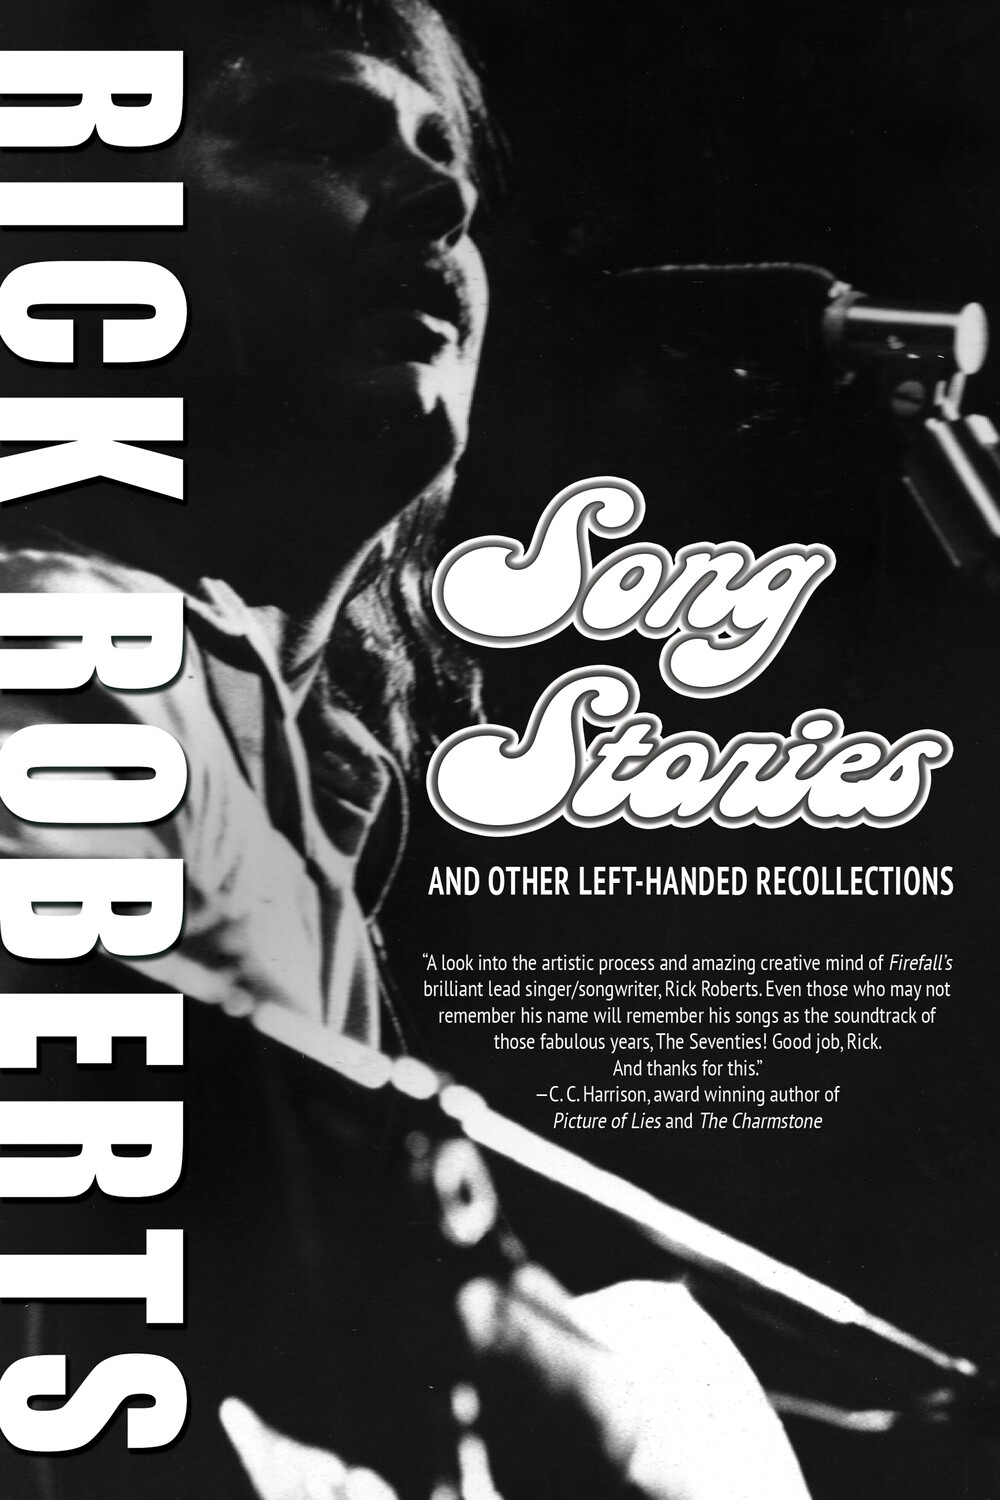 Song Stories and Other Left-Handed Recollections by Rick Roberts